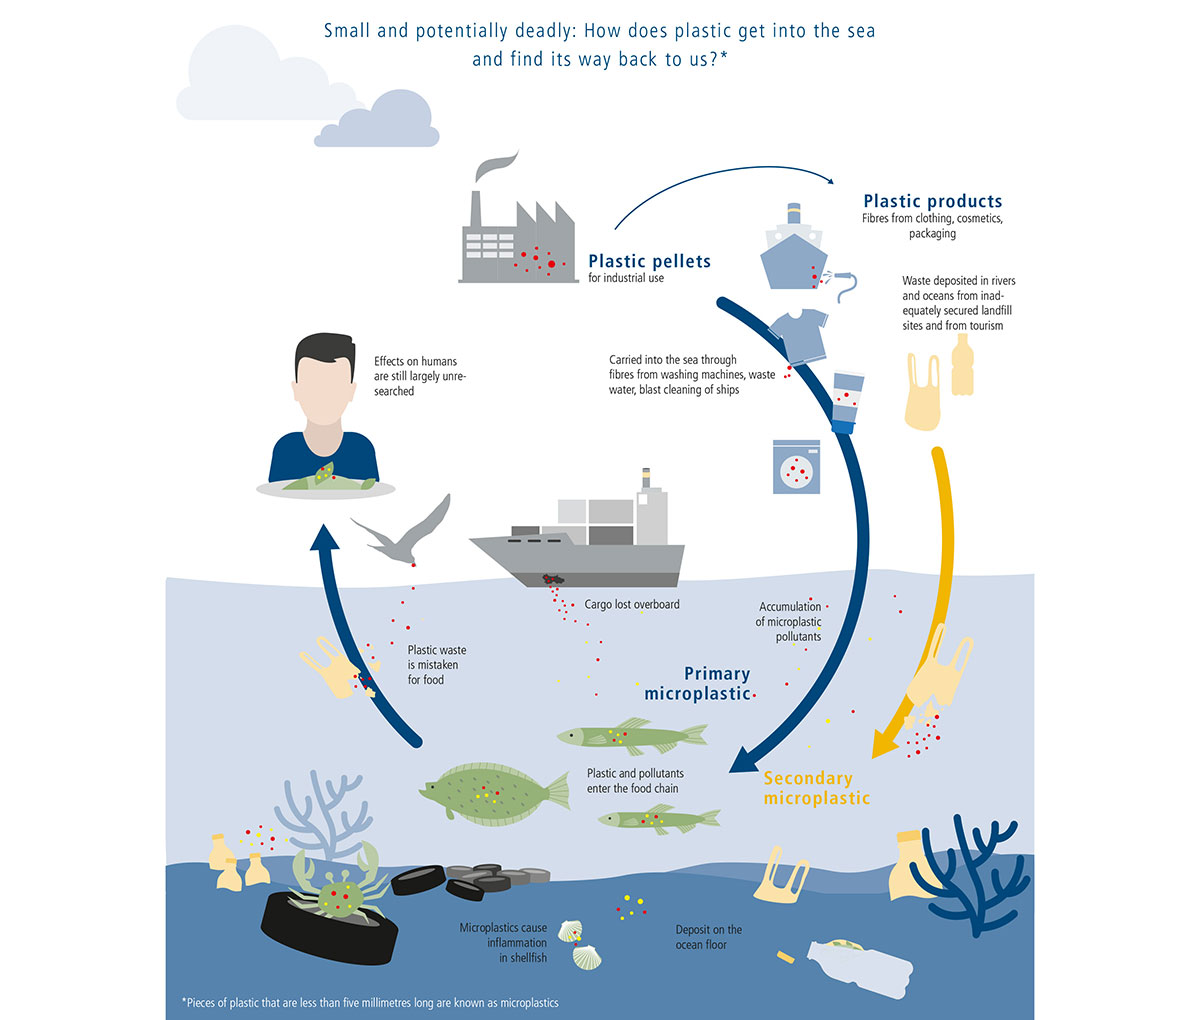 The microplastic cycle